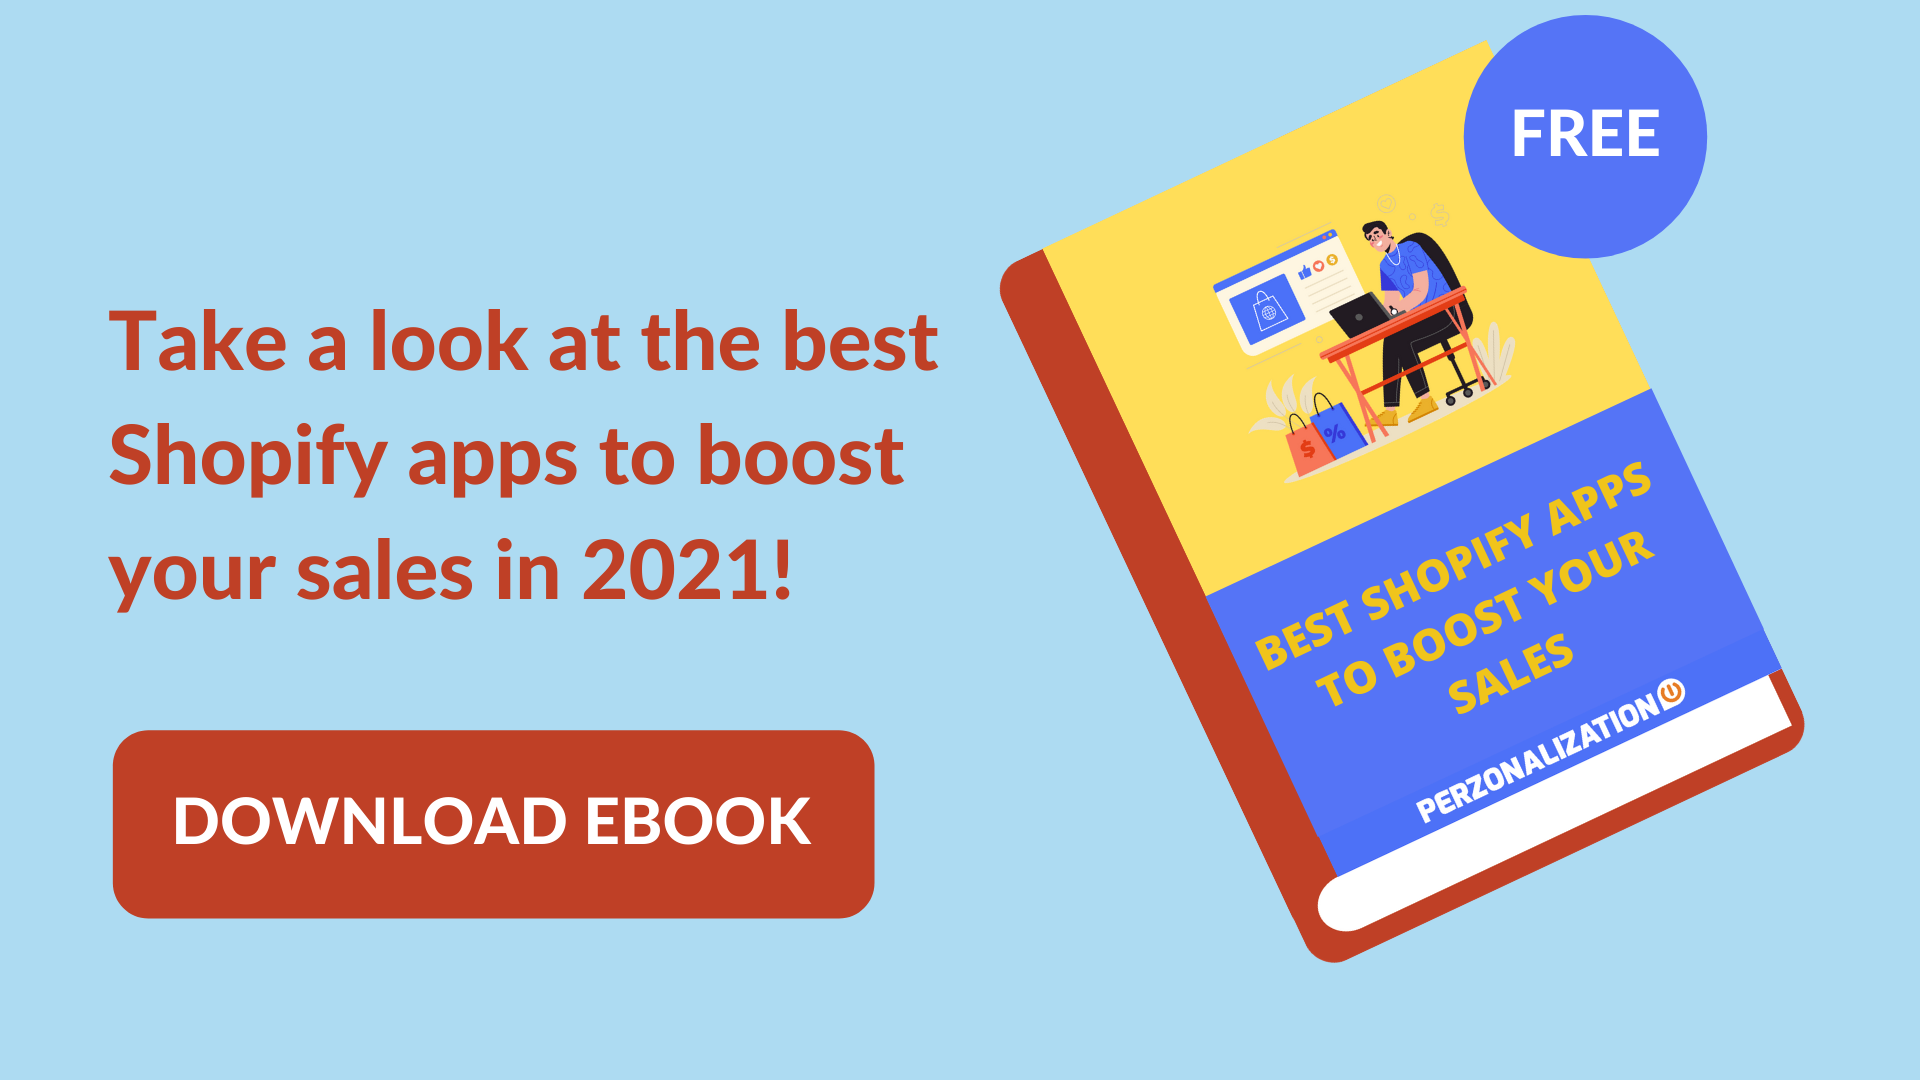 Best Shopify Apps in 2021: Free eBook popup